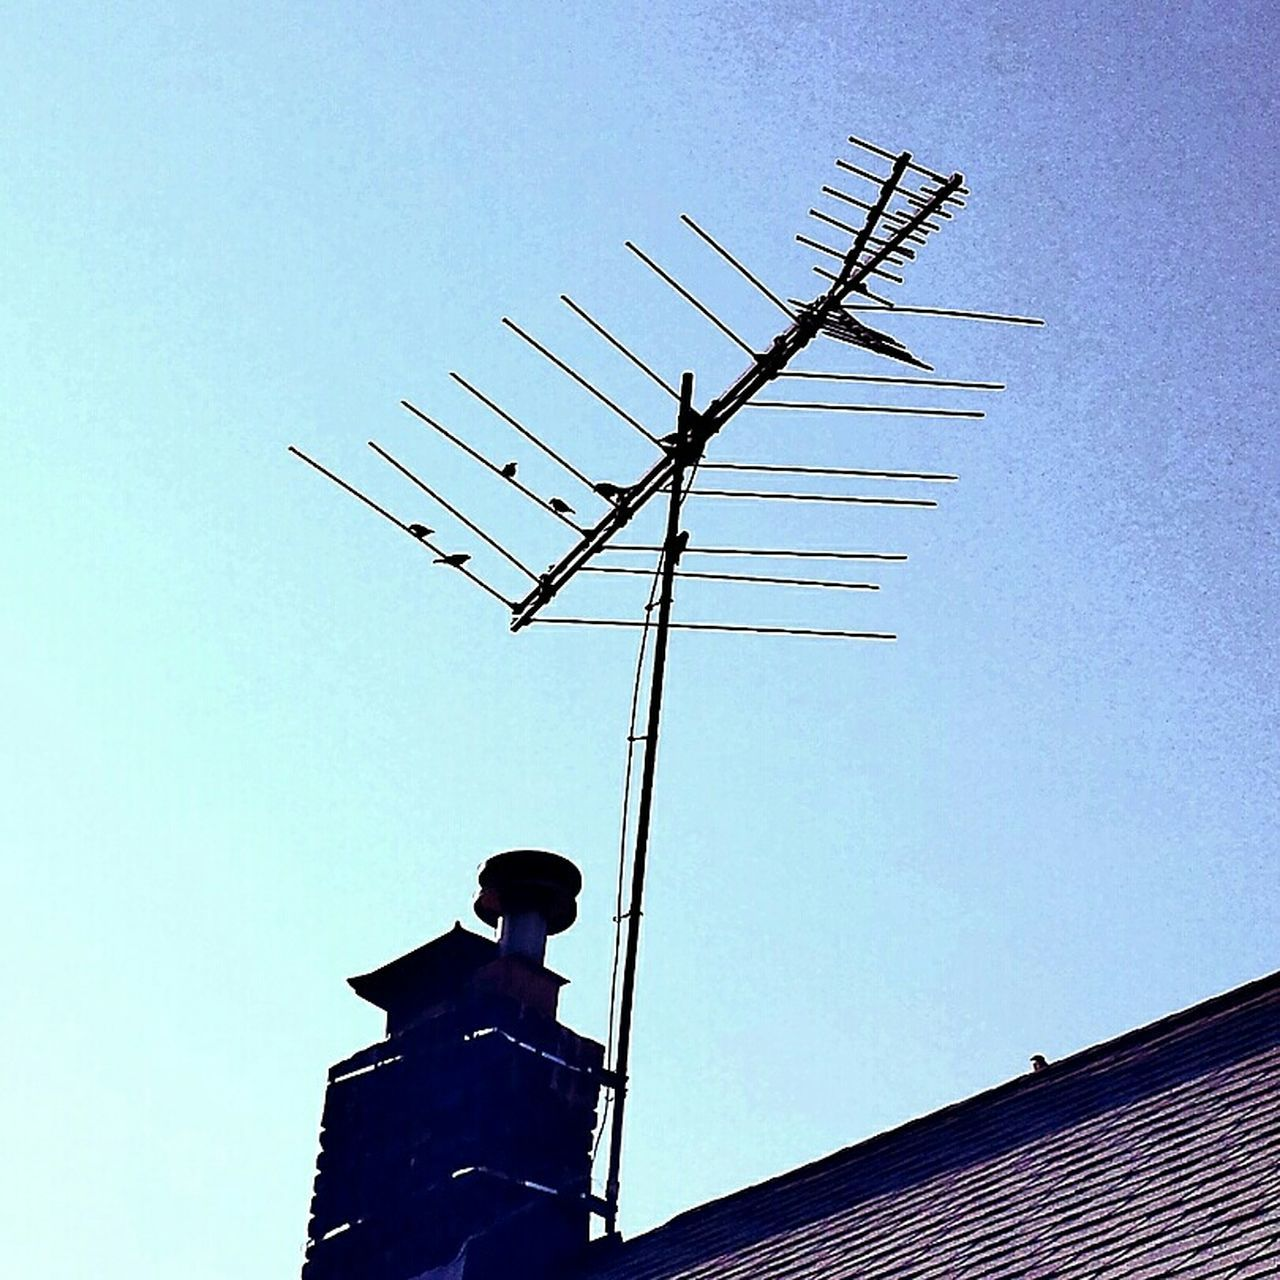 low angle view, clear sky, built structure, day, technology, building exterior, architecture, communication, roof, outdoors, antenna - aerial, no people, telecommunications equipment, television aerial, weather vane, sky, tiled roof